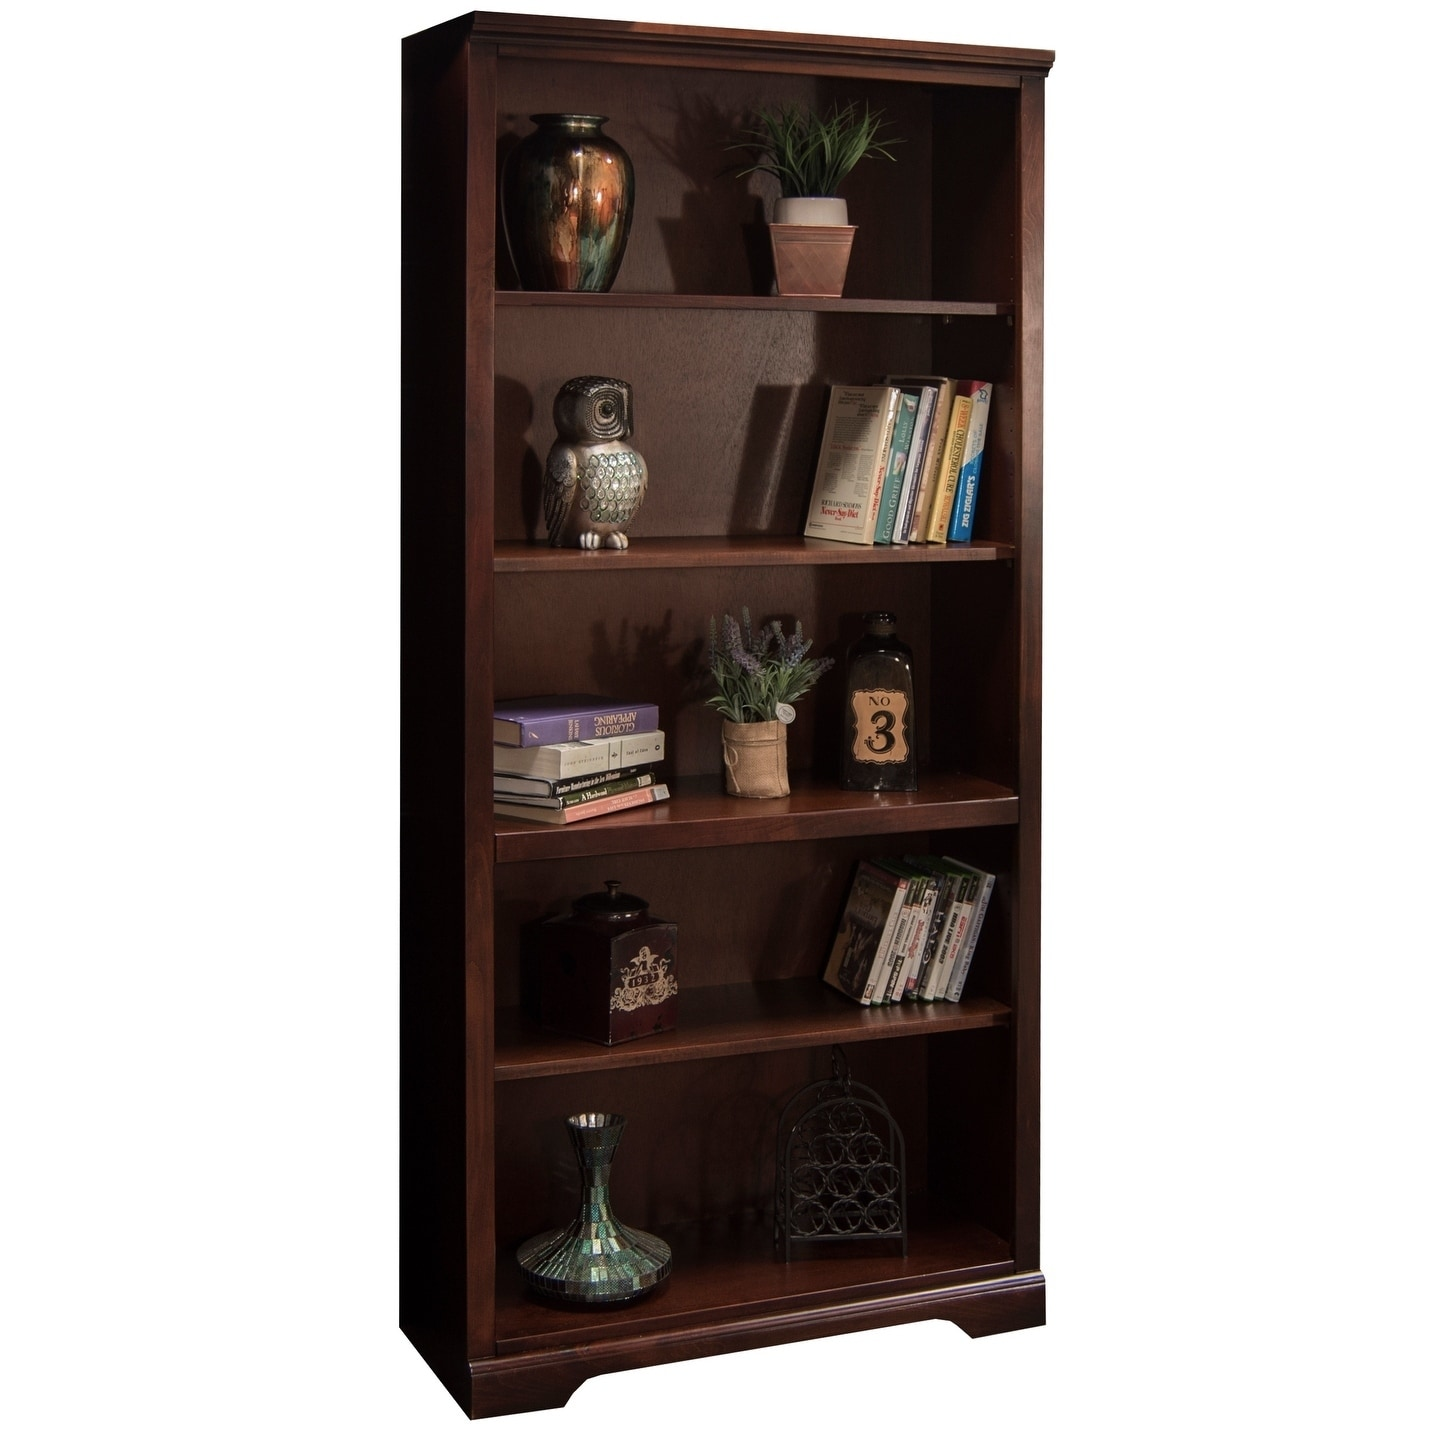 wholesale dealer d5c9b 1ff07 Buy Maple Bookshelves & Bookcases Online at Overstock | Our ...